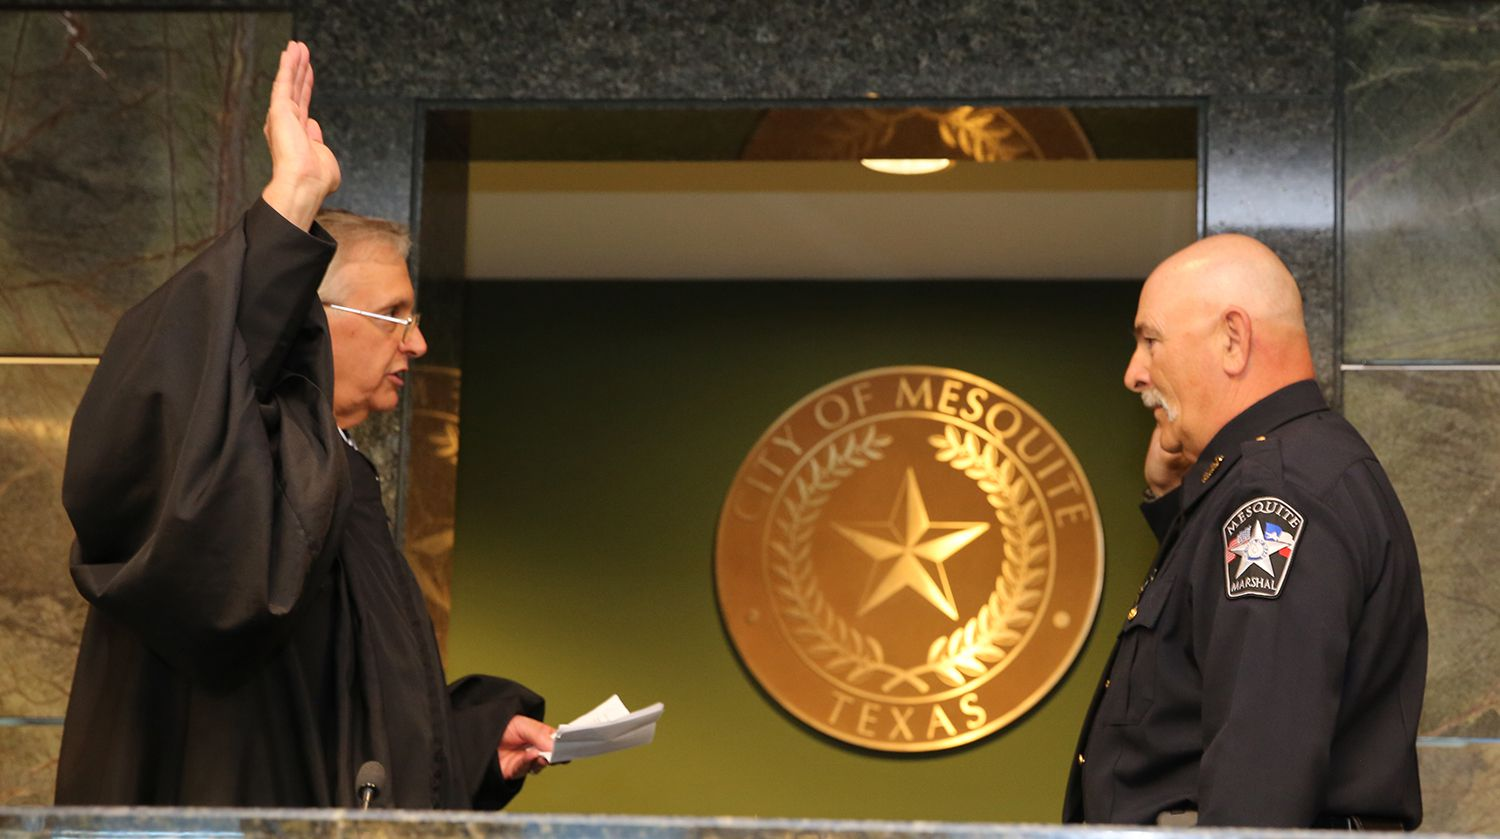 Mesquite Municipal Judge Steve Crane swears in City Marshal Michael Meek in a 2015 photo. Crane announced this week that he plans to retire in November after more than a decade in his role.